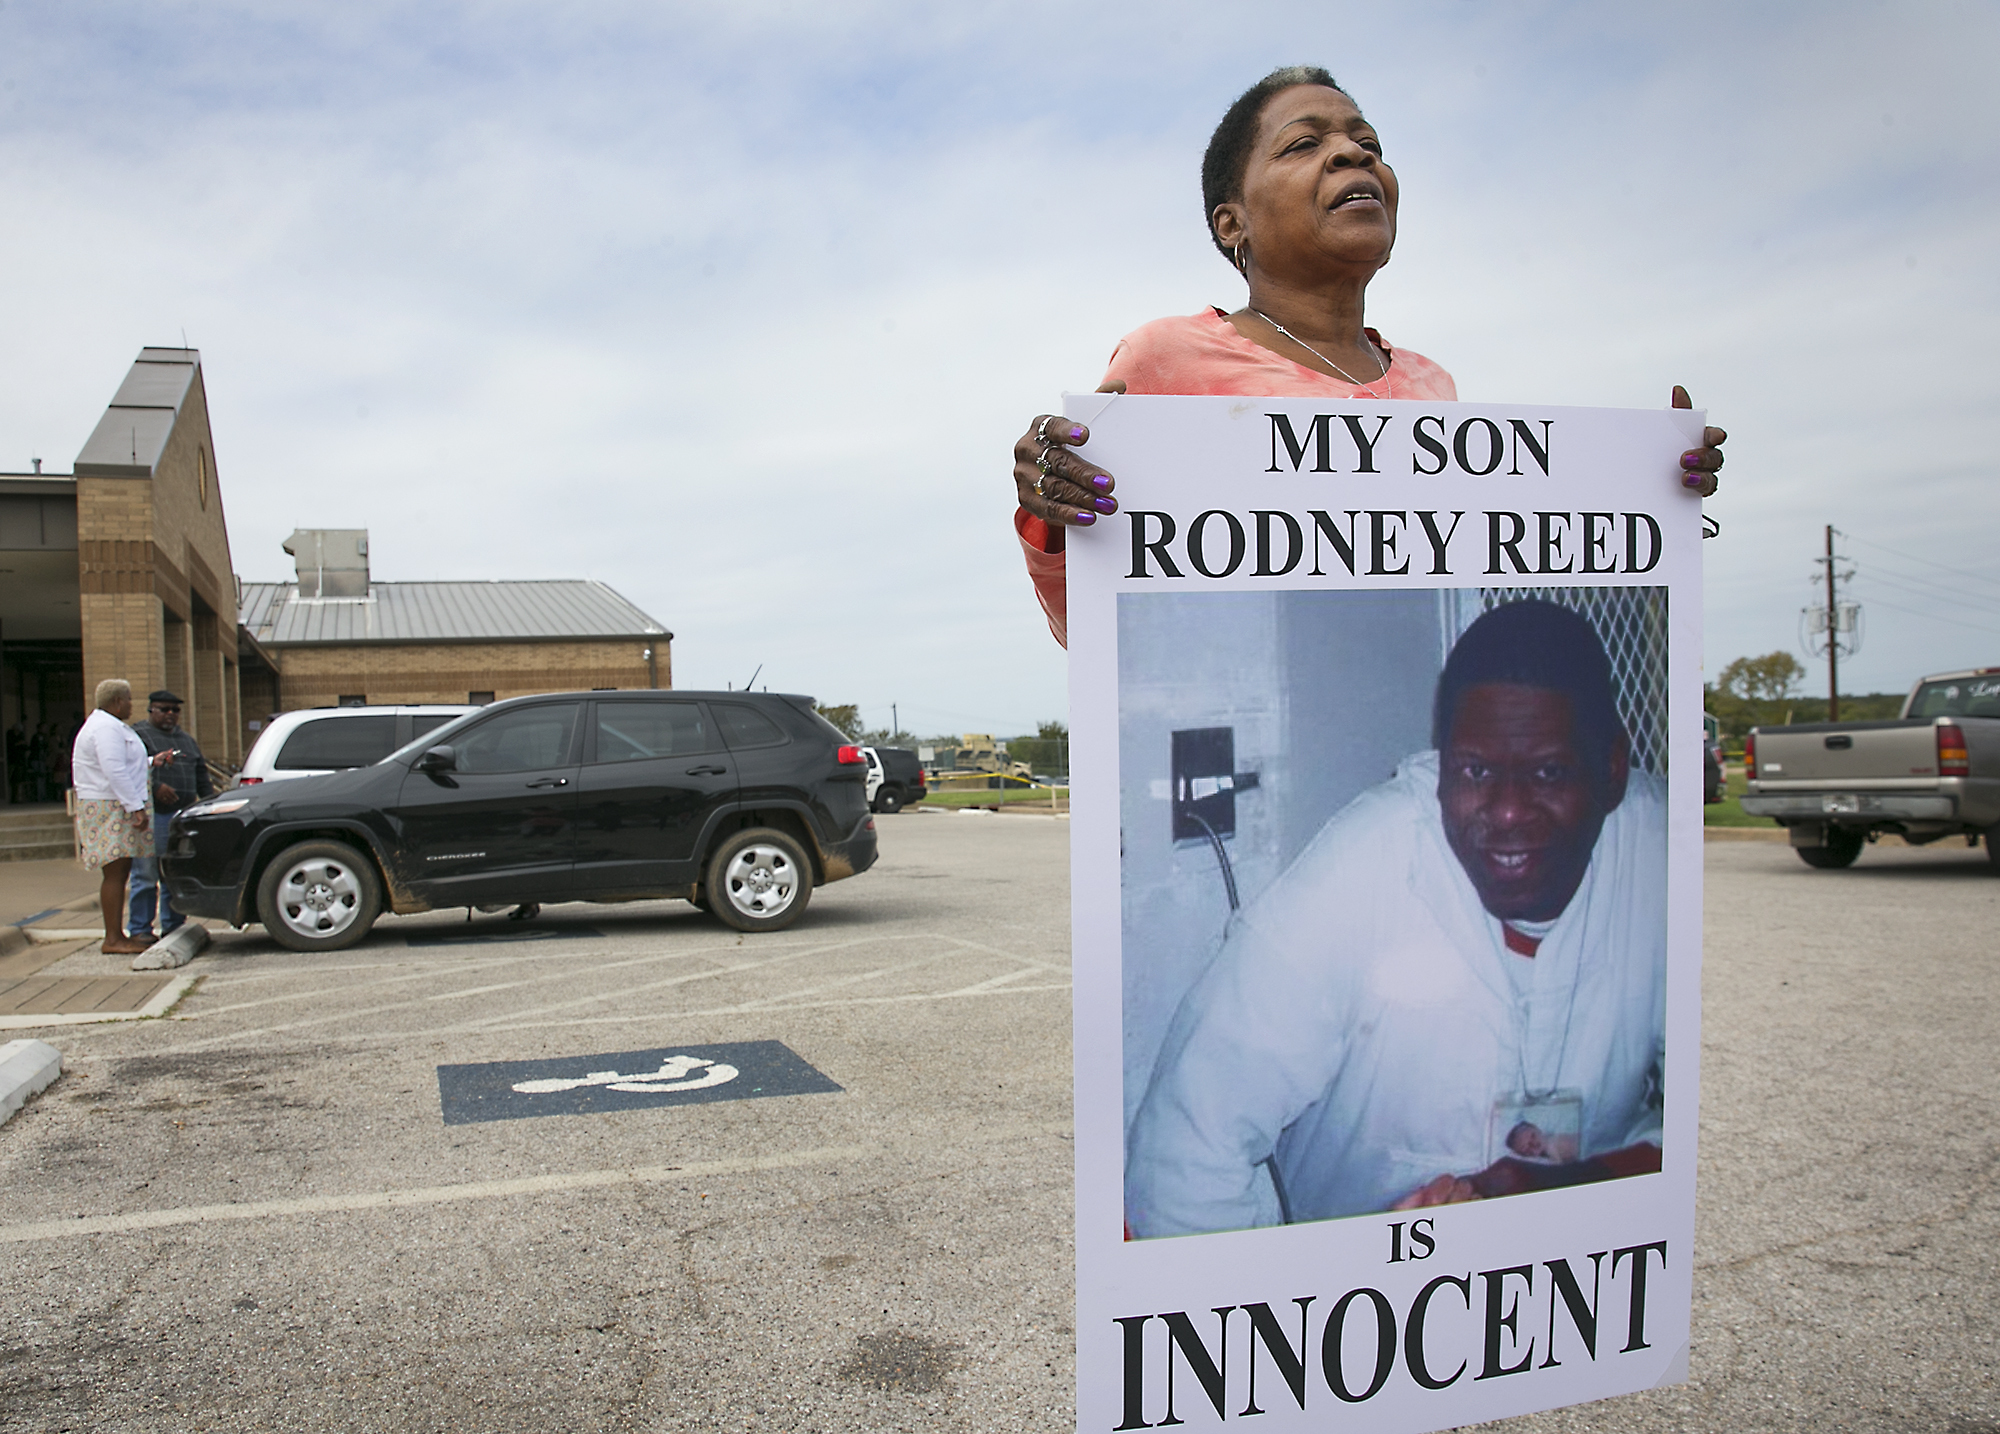 Sandra Reed, the mother of death row inmate Rodney Reed, shows her continued support of her son by carrying this placard around the parking lot during a break in a hearing in Bastrop County District Court on Tuesday, October 10. 2017. Reed was asking Judge Doug Shaver to reconsider testimony from his murder trial in the slaying of Stacey Stites. (Ralph Barrera/Austin American-Statesman via AP)